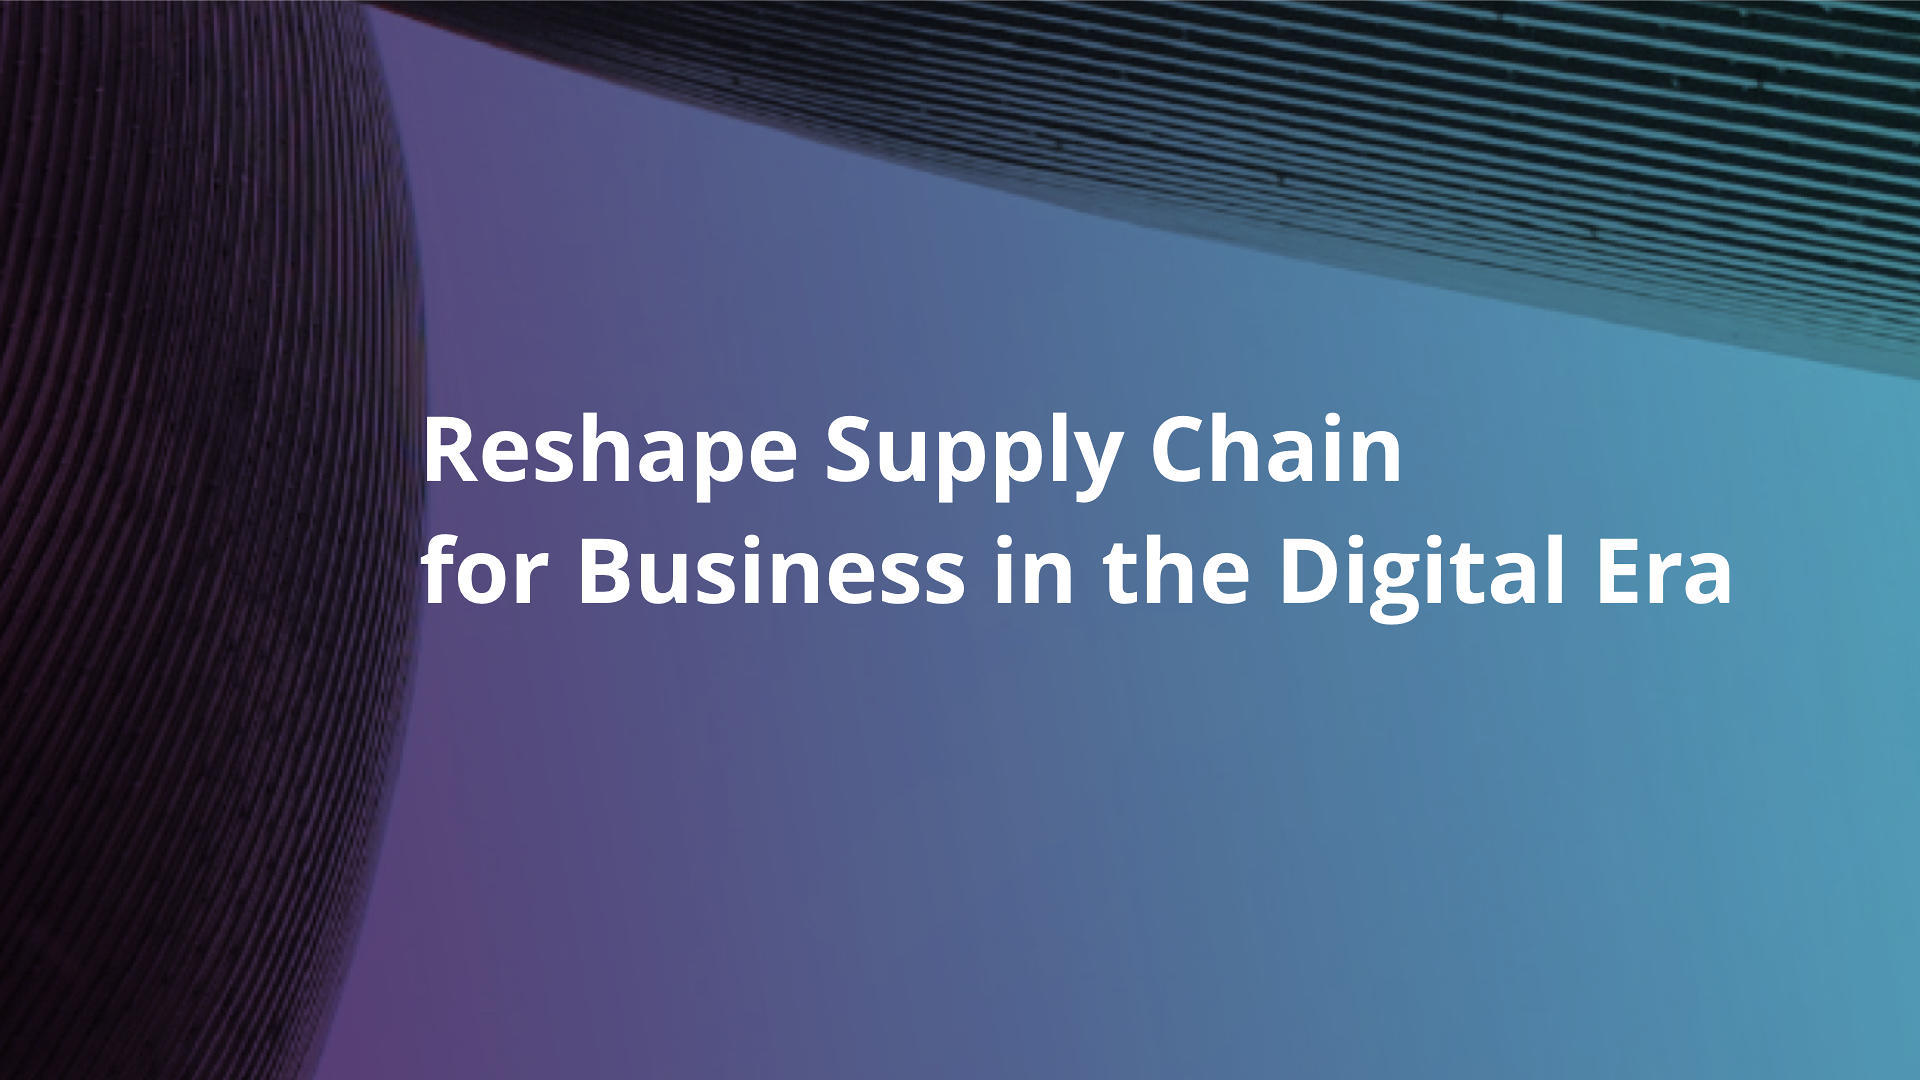 Reshape Supply Chain for Business in the Digital Era